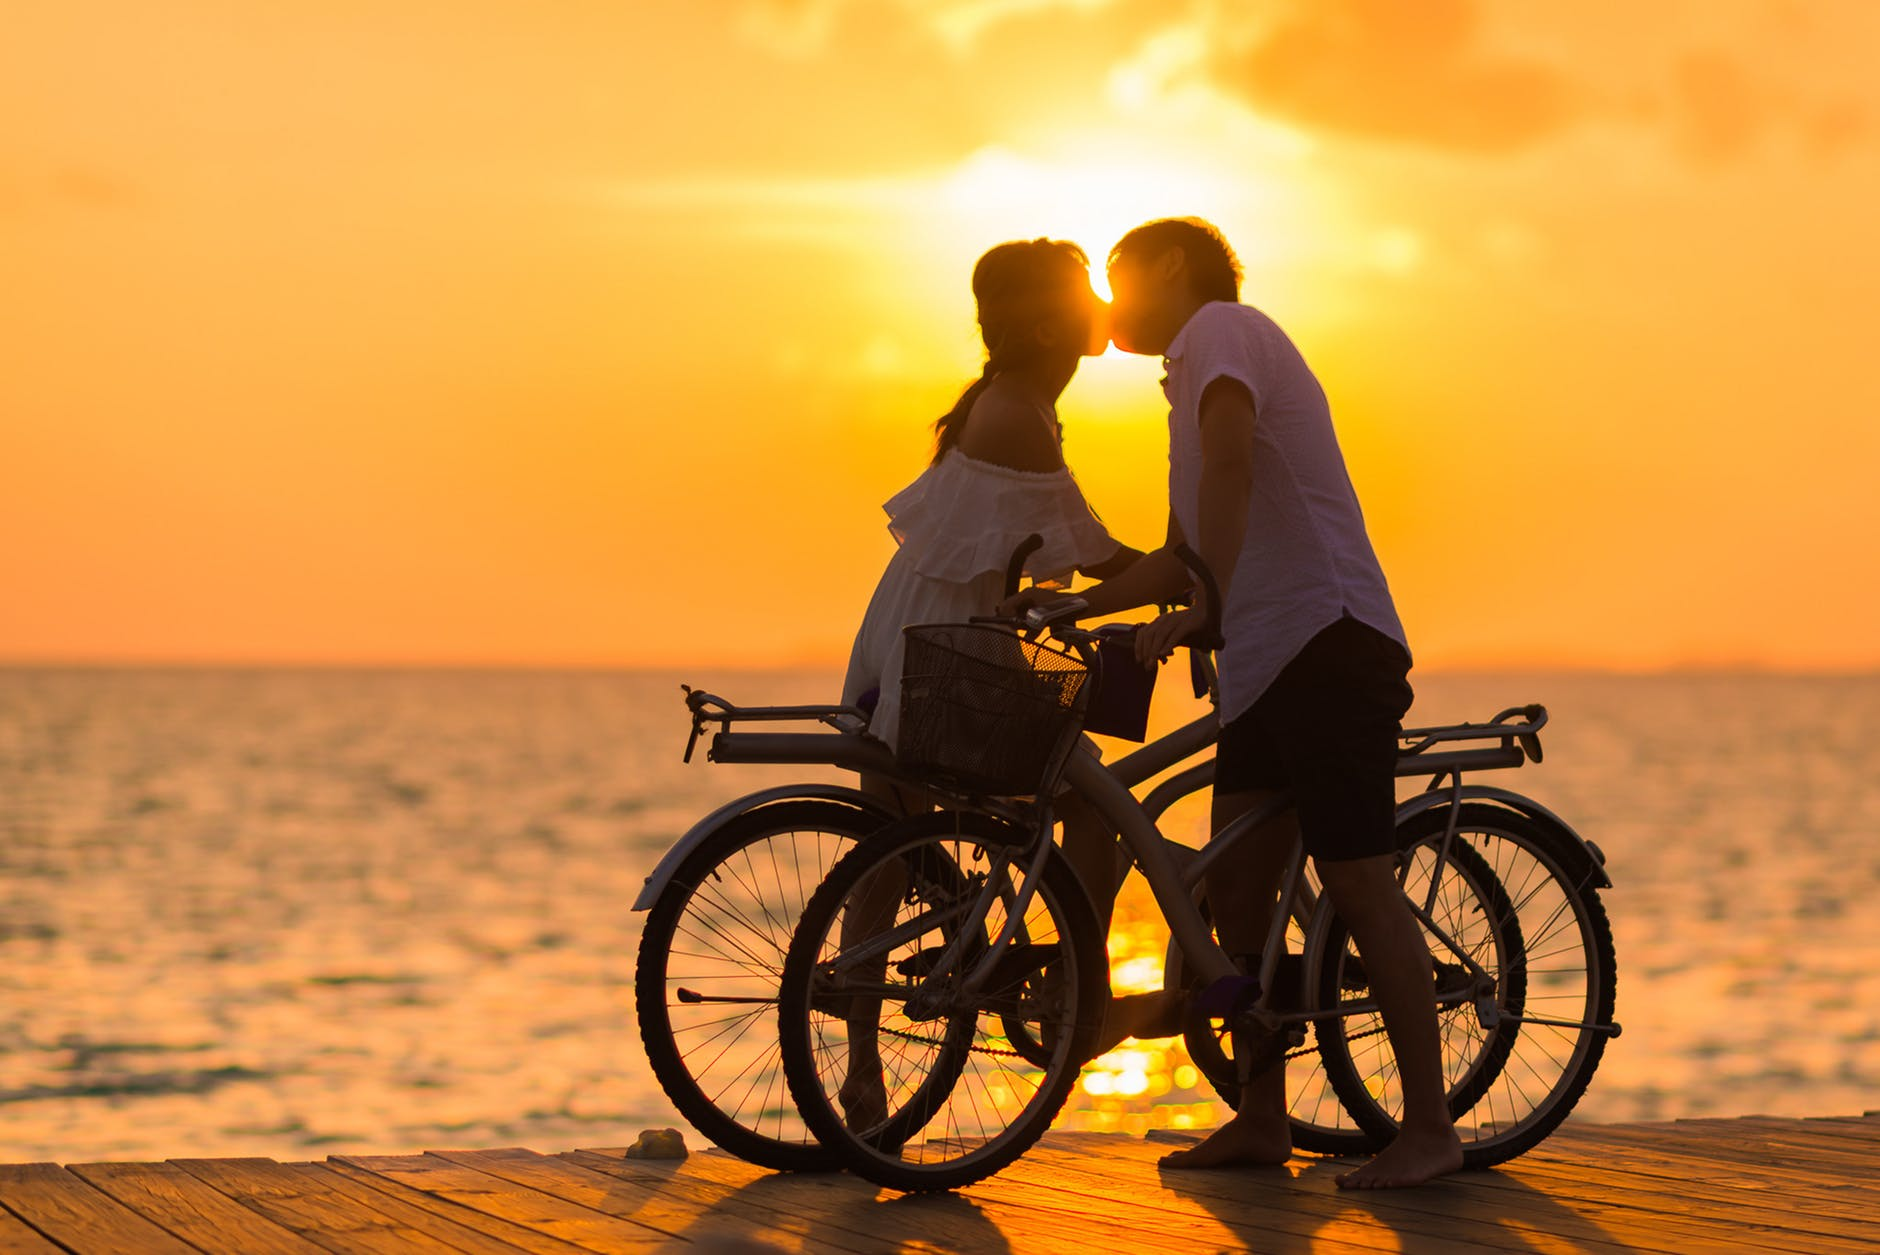 kissing on bicycle in sunset